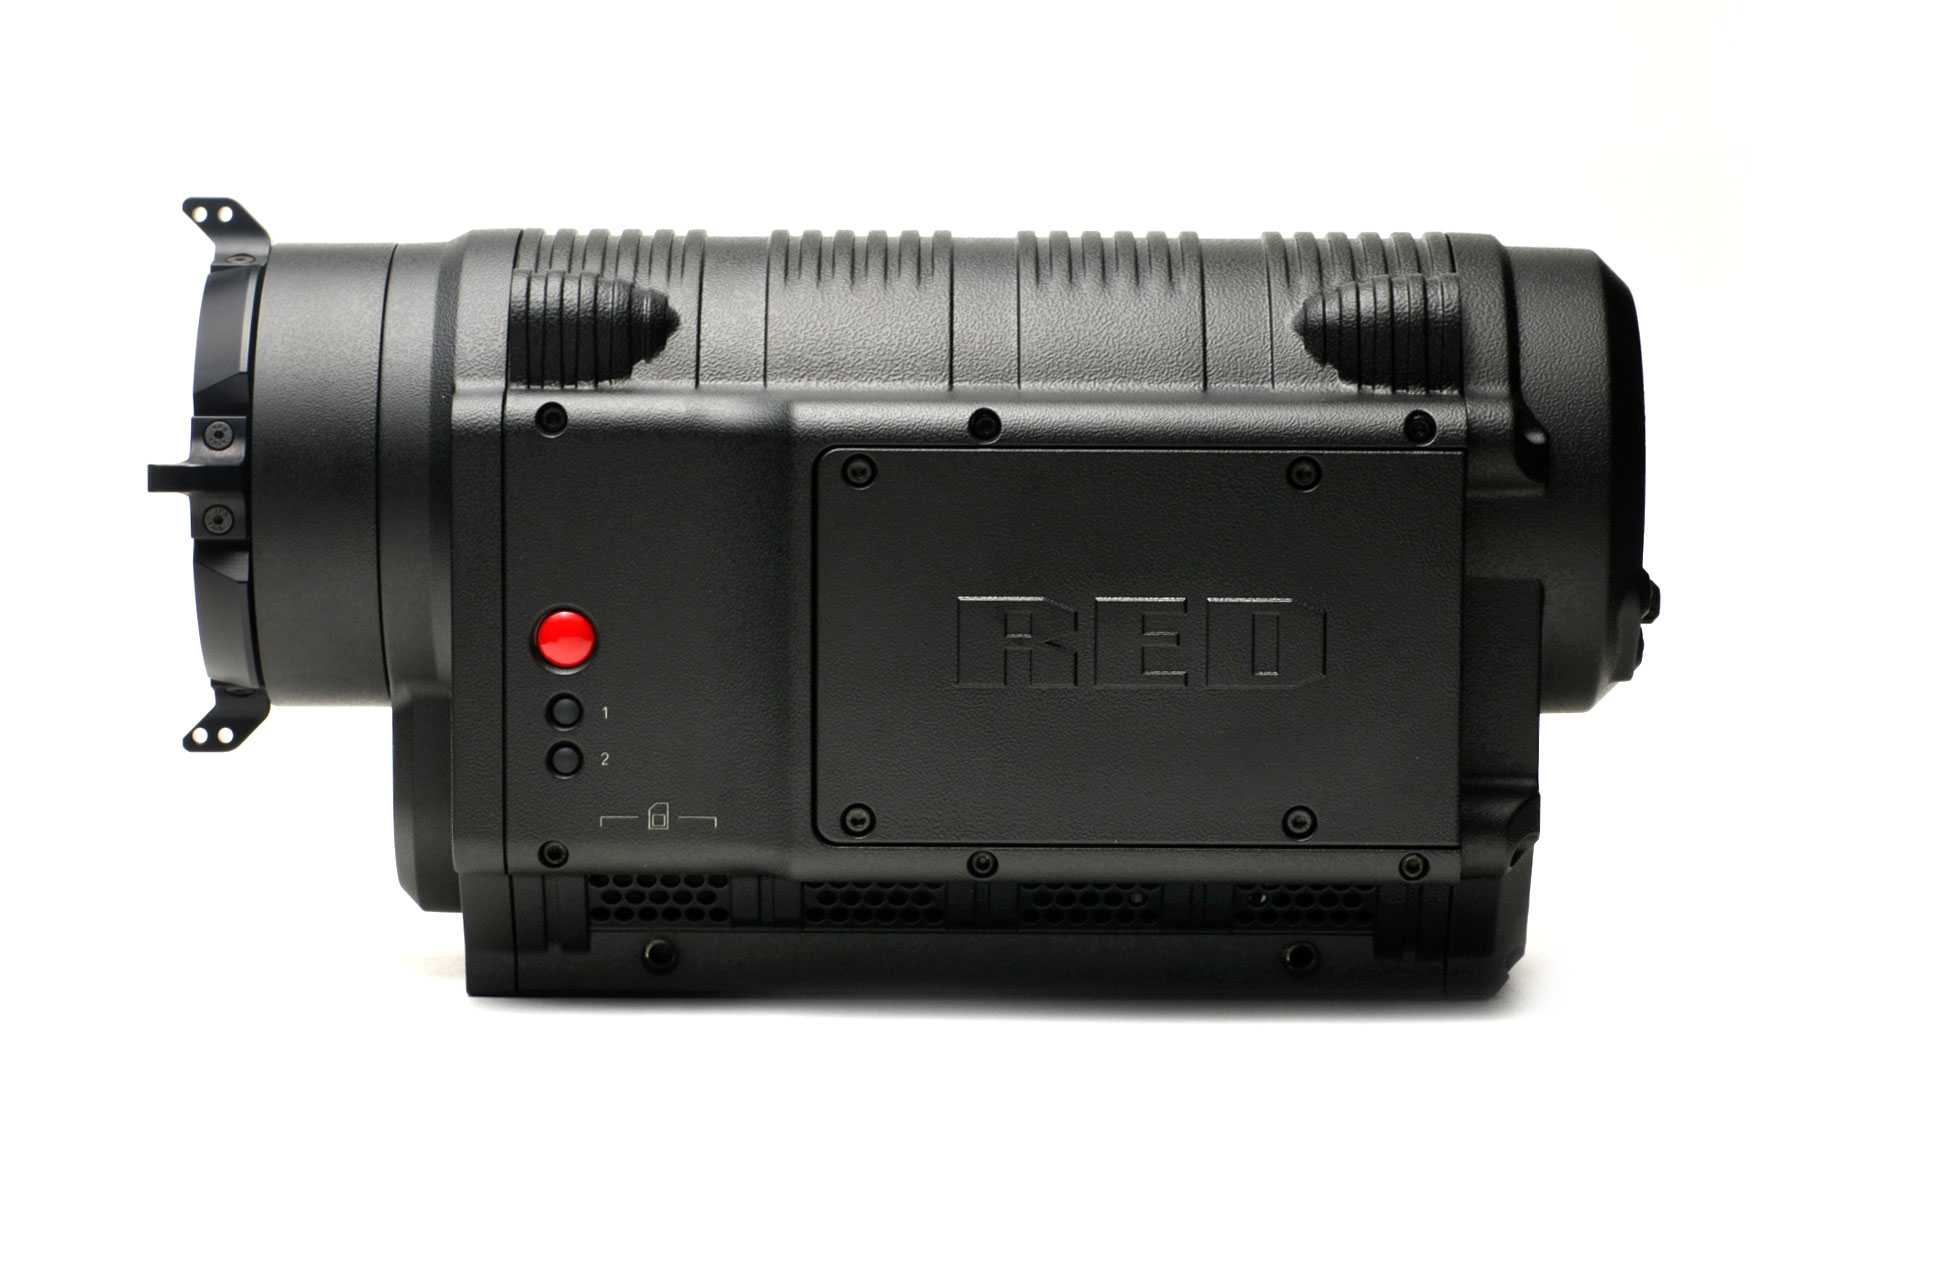 red one camera kit hire rh camerakithire com Red Scarlet Camera Red Digital Cinema Camera Company